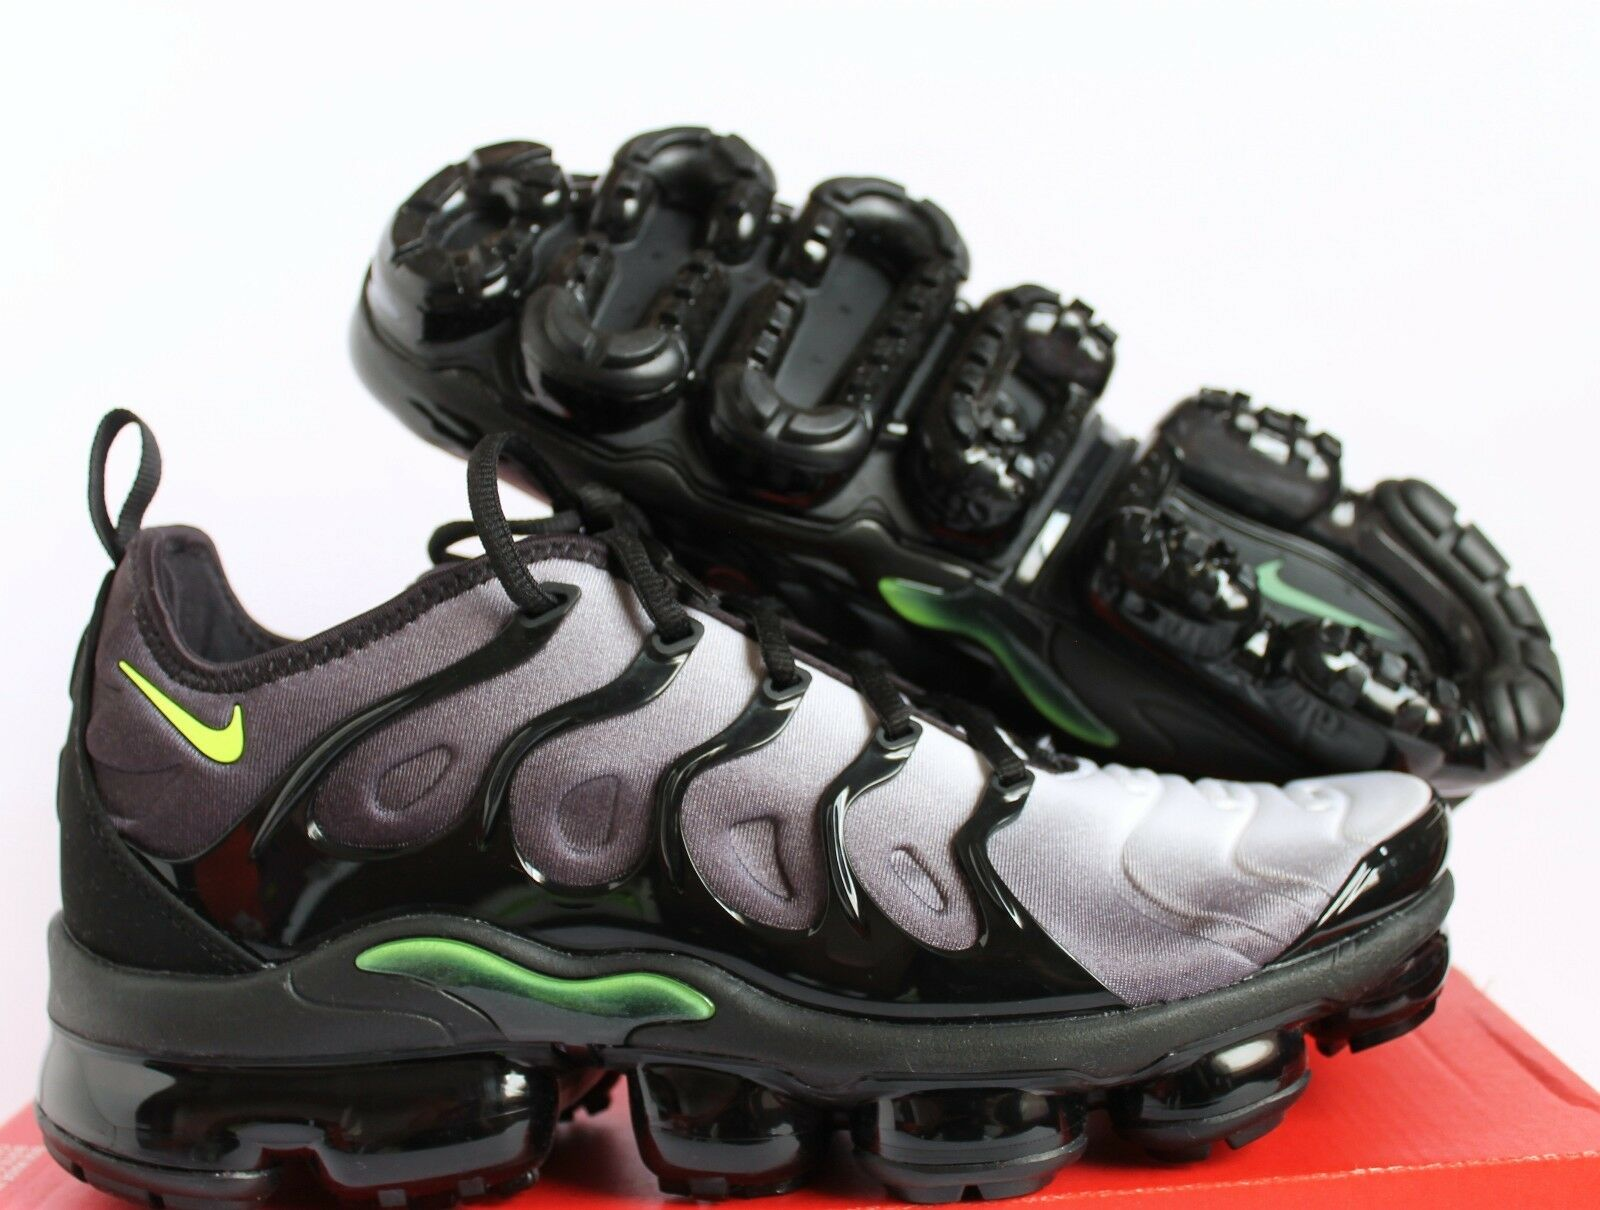 new products 4d150 b69b5 Nike Air Vapormax Plus Neon 95 924453-009 Black Volt White Size 9 ...